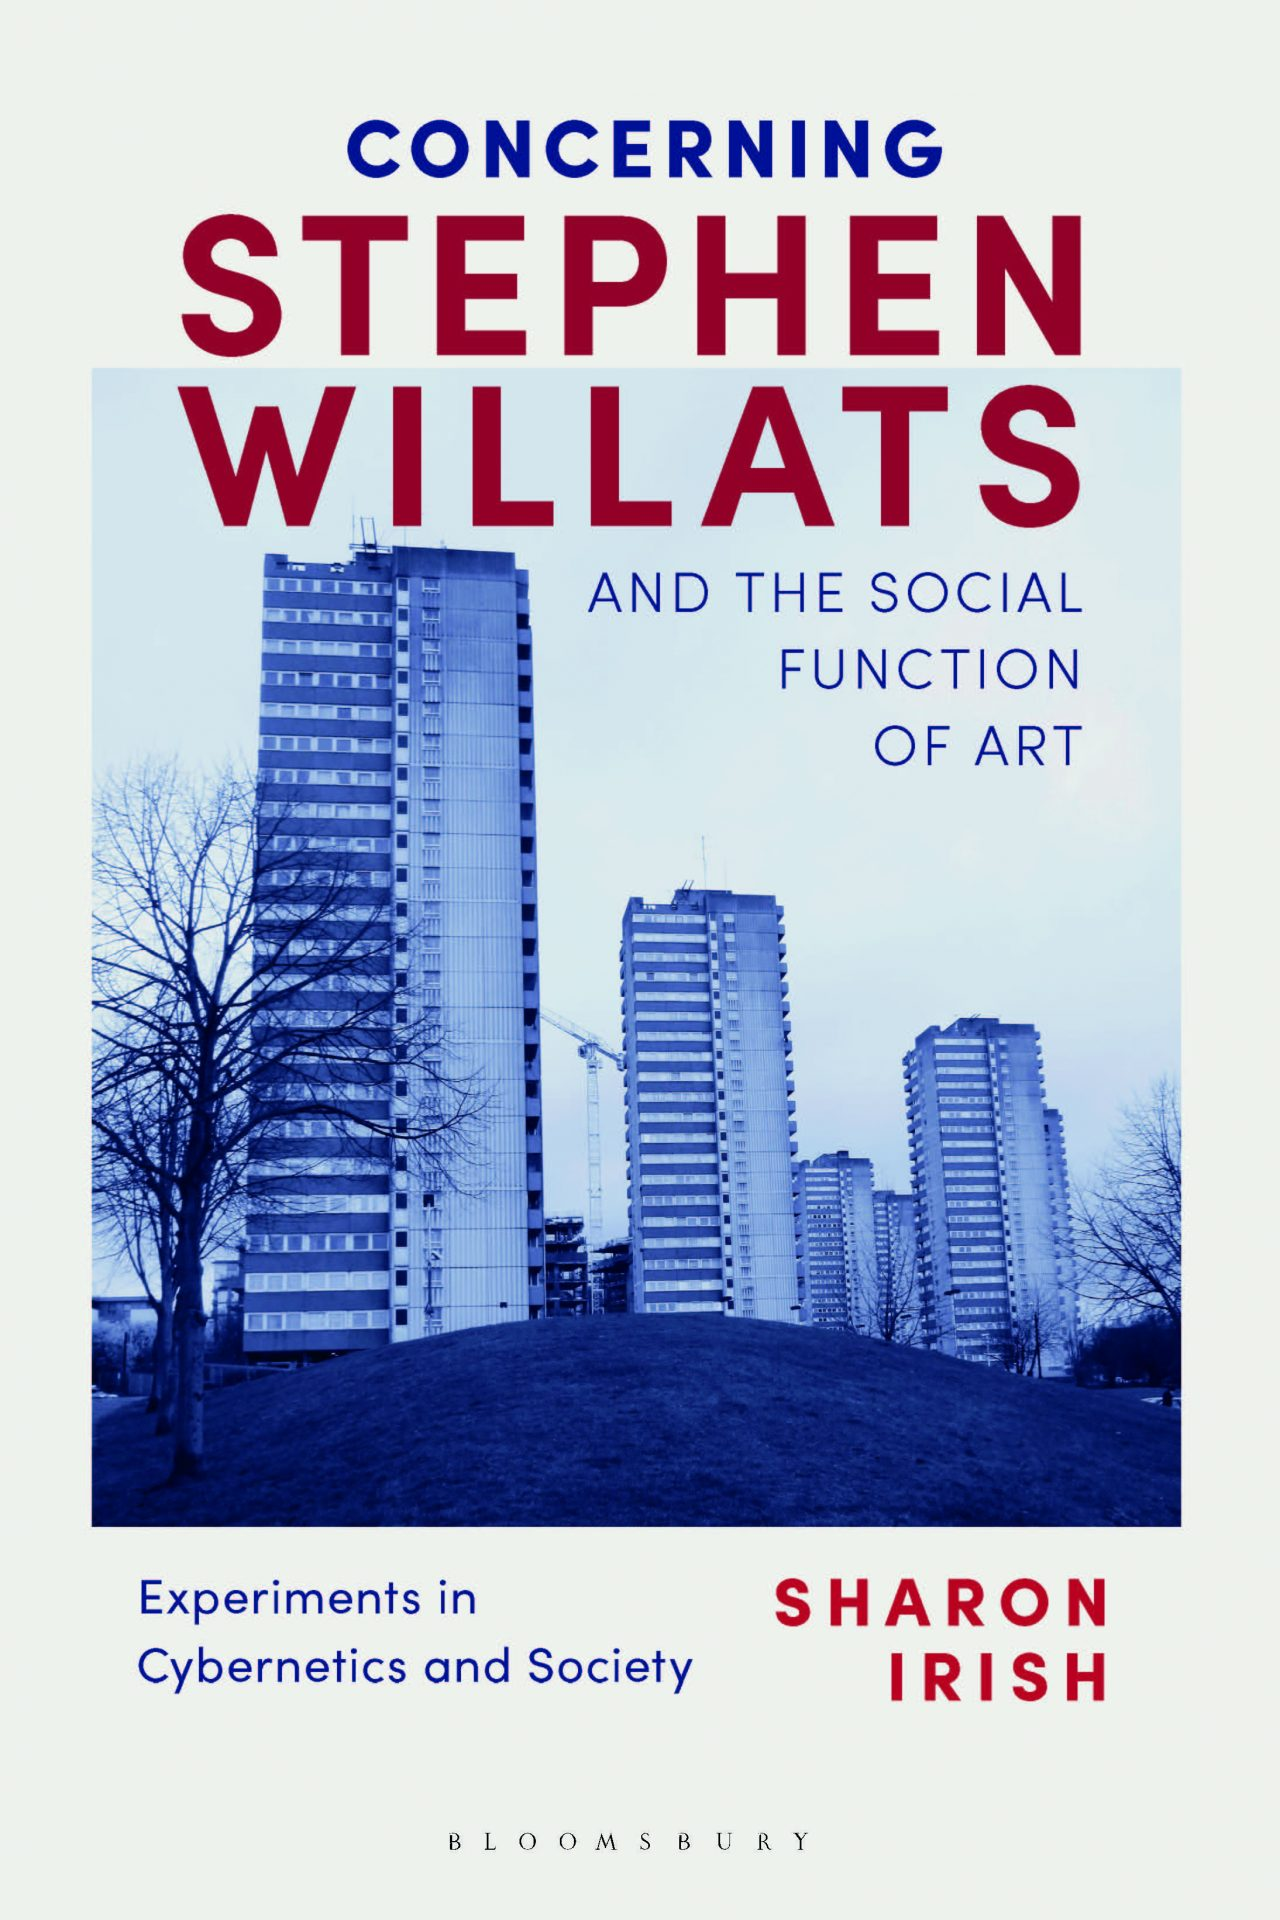 cover of book on Stephen Willats